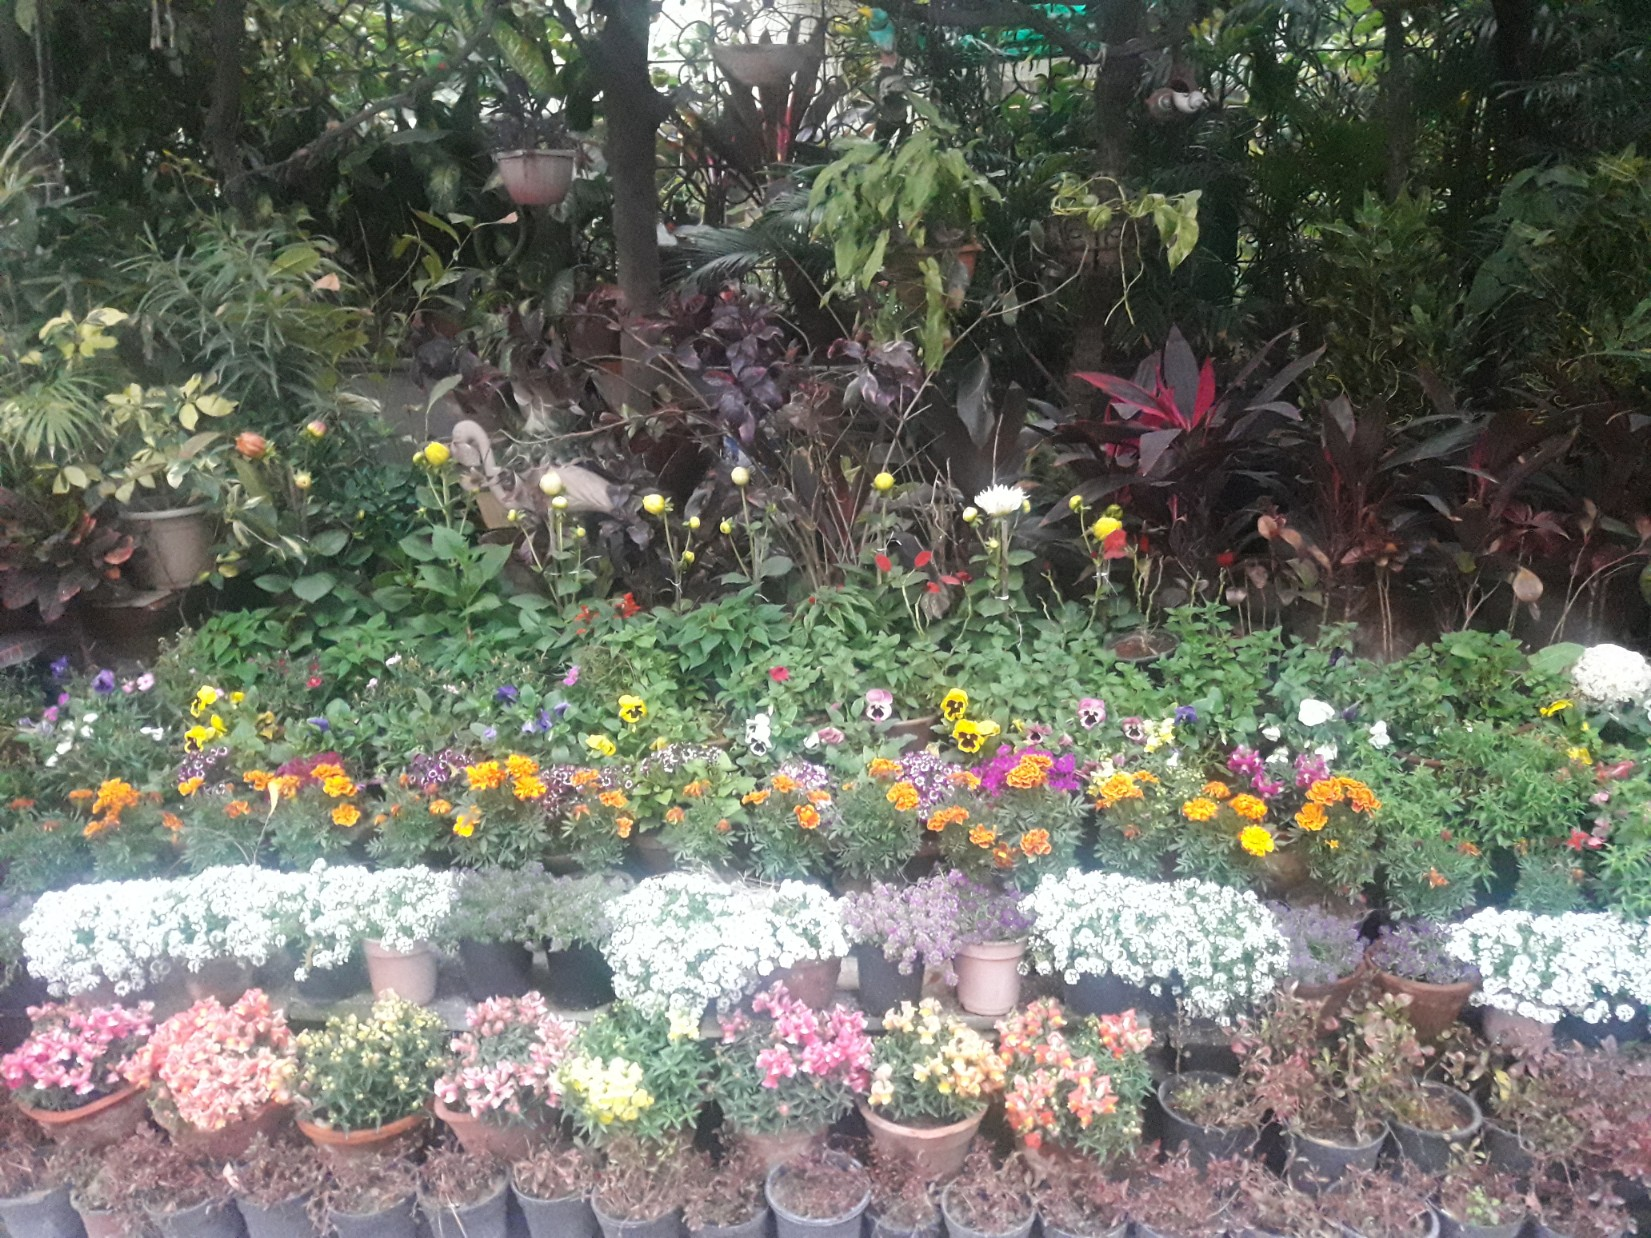 A beautiful garden ,captured with my phone camera. The essence is the variety of flowers and shrubs